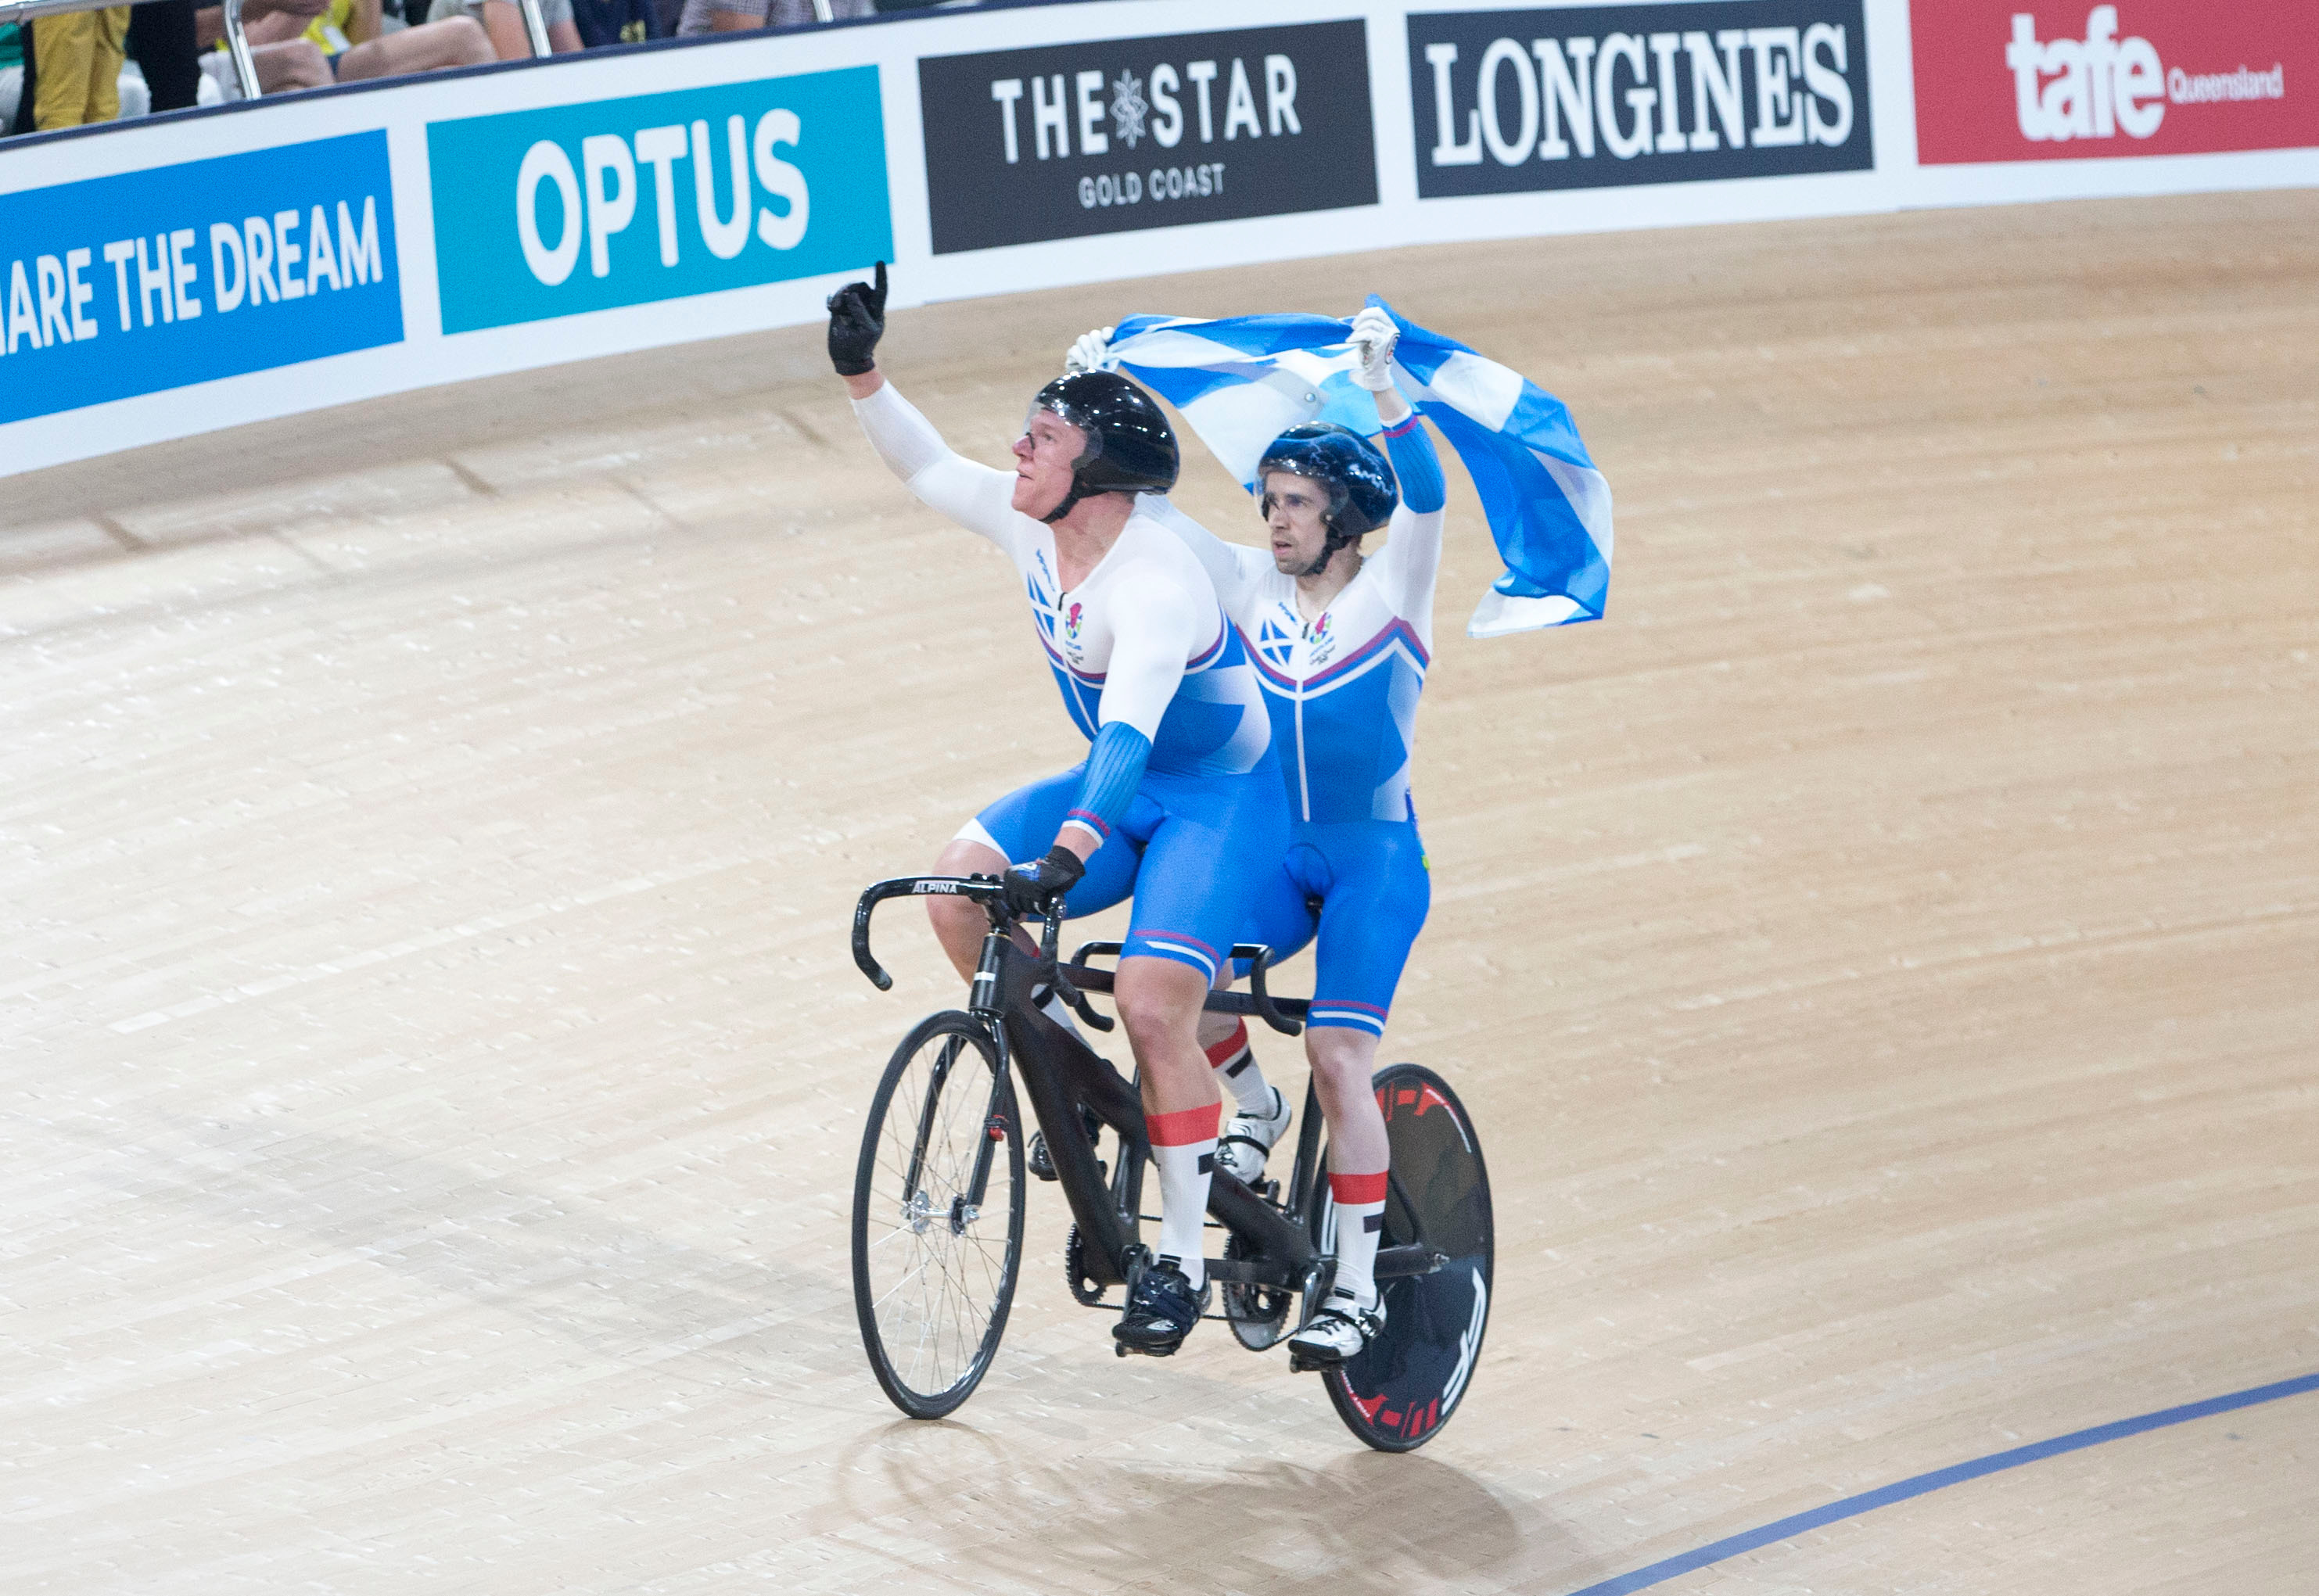 Neil Fachie and Matt Rotherham celebrate one of their wins at the 2018 commonwealth Games.